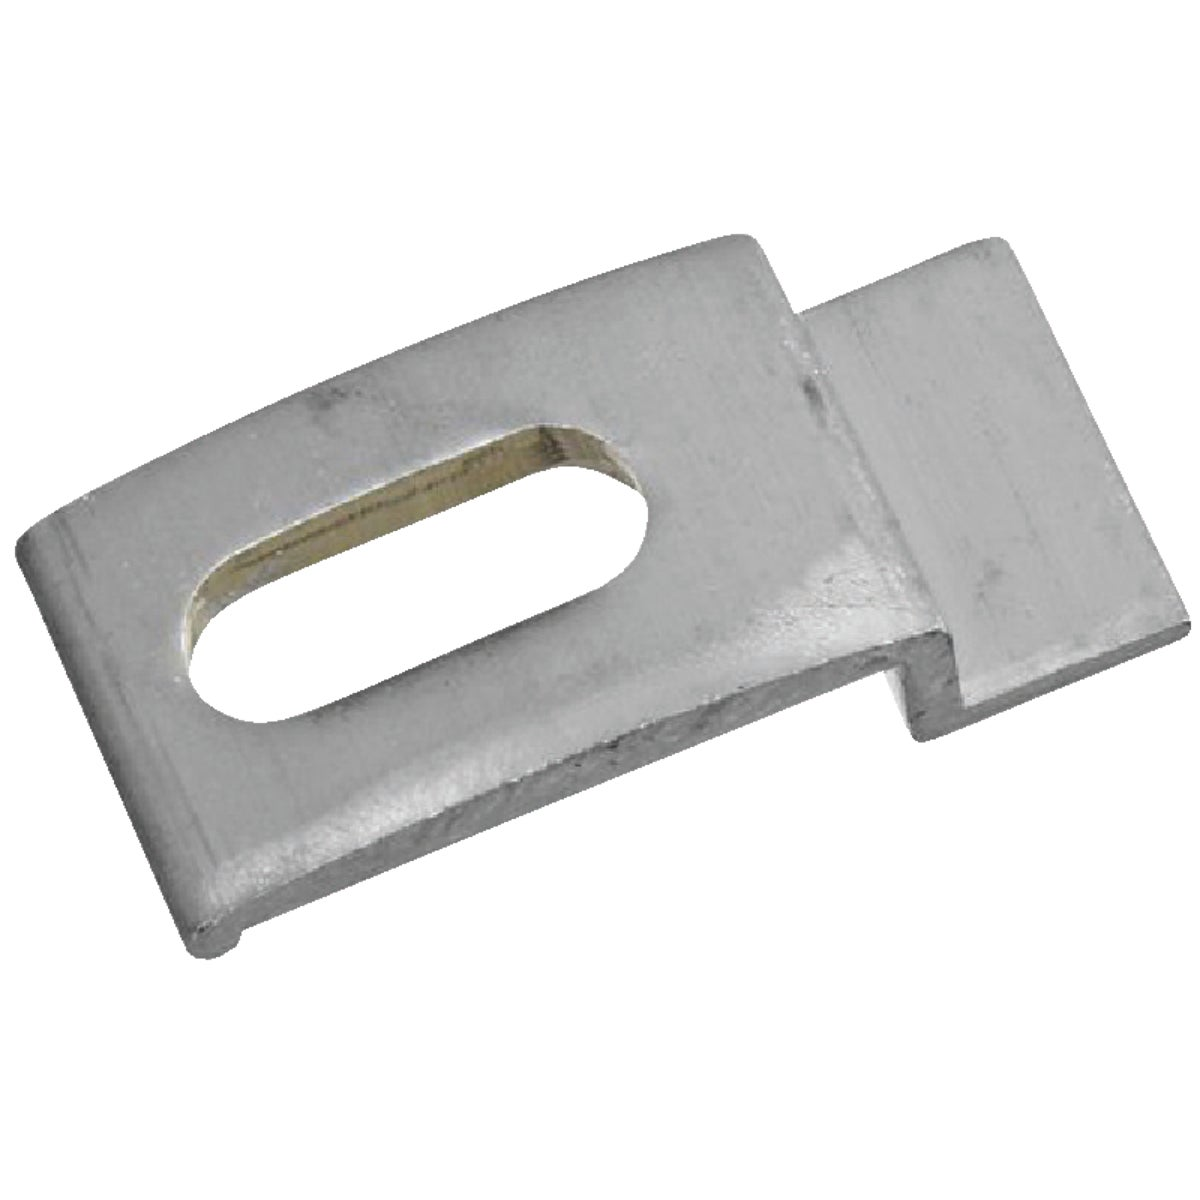 STORM DOOR CLIPS - V832CS by Hampton Prod Intl